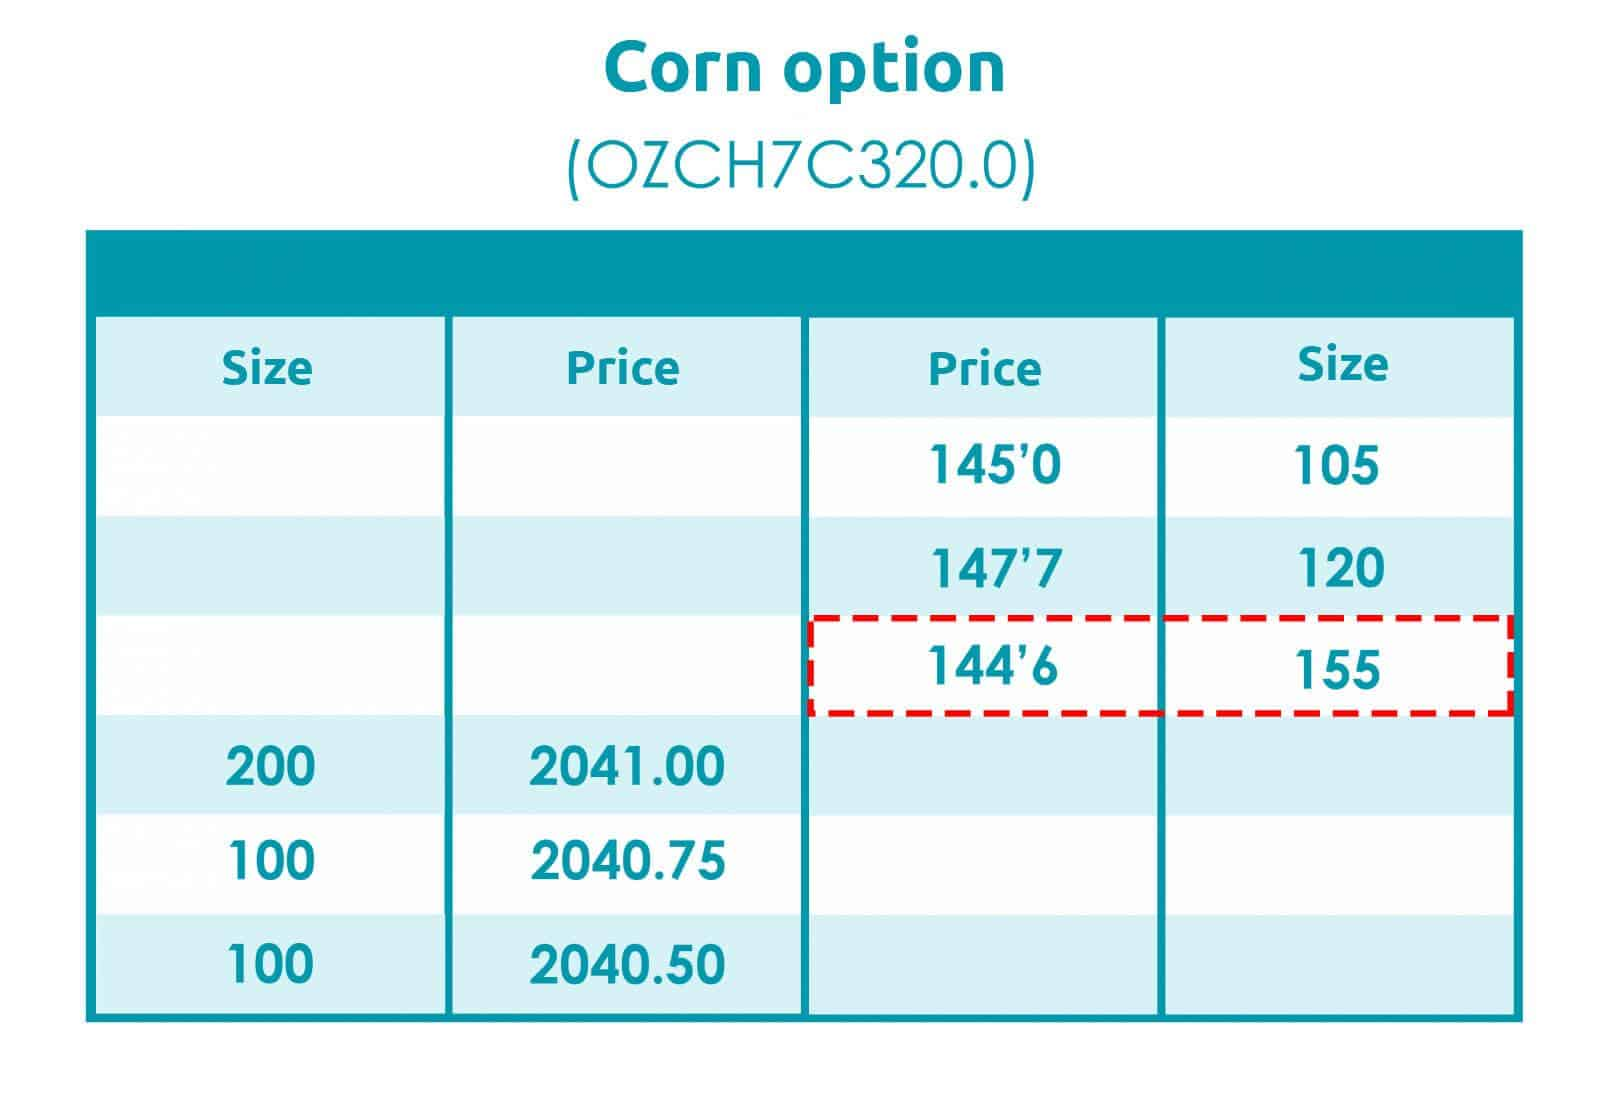 Corn option (OZCH7C320.0)